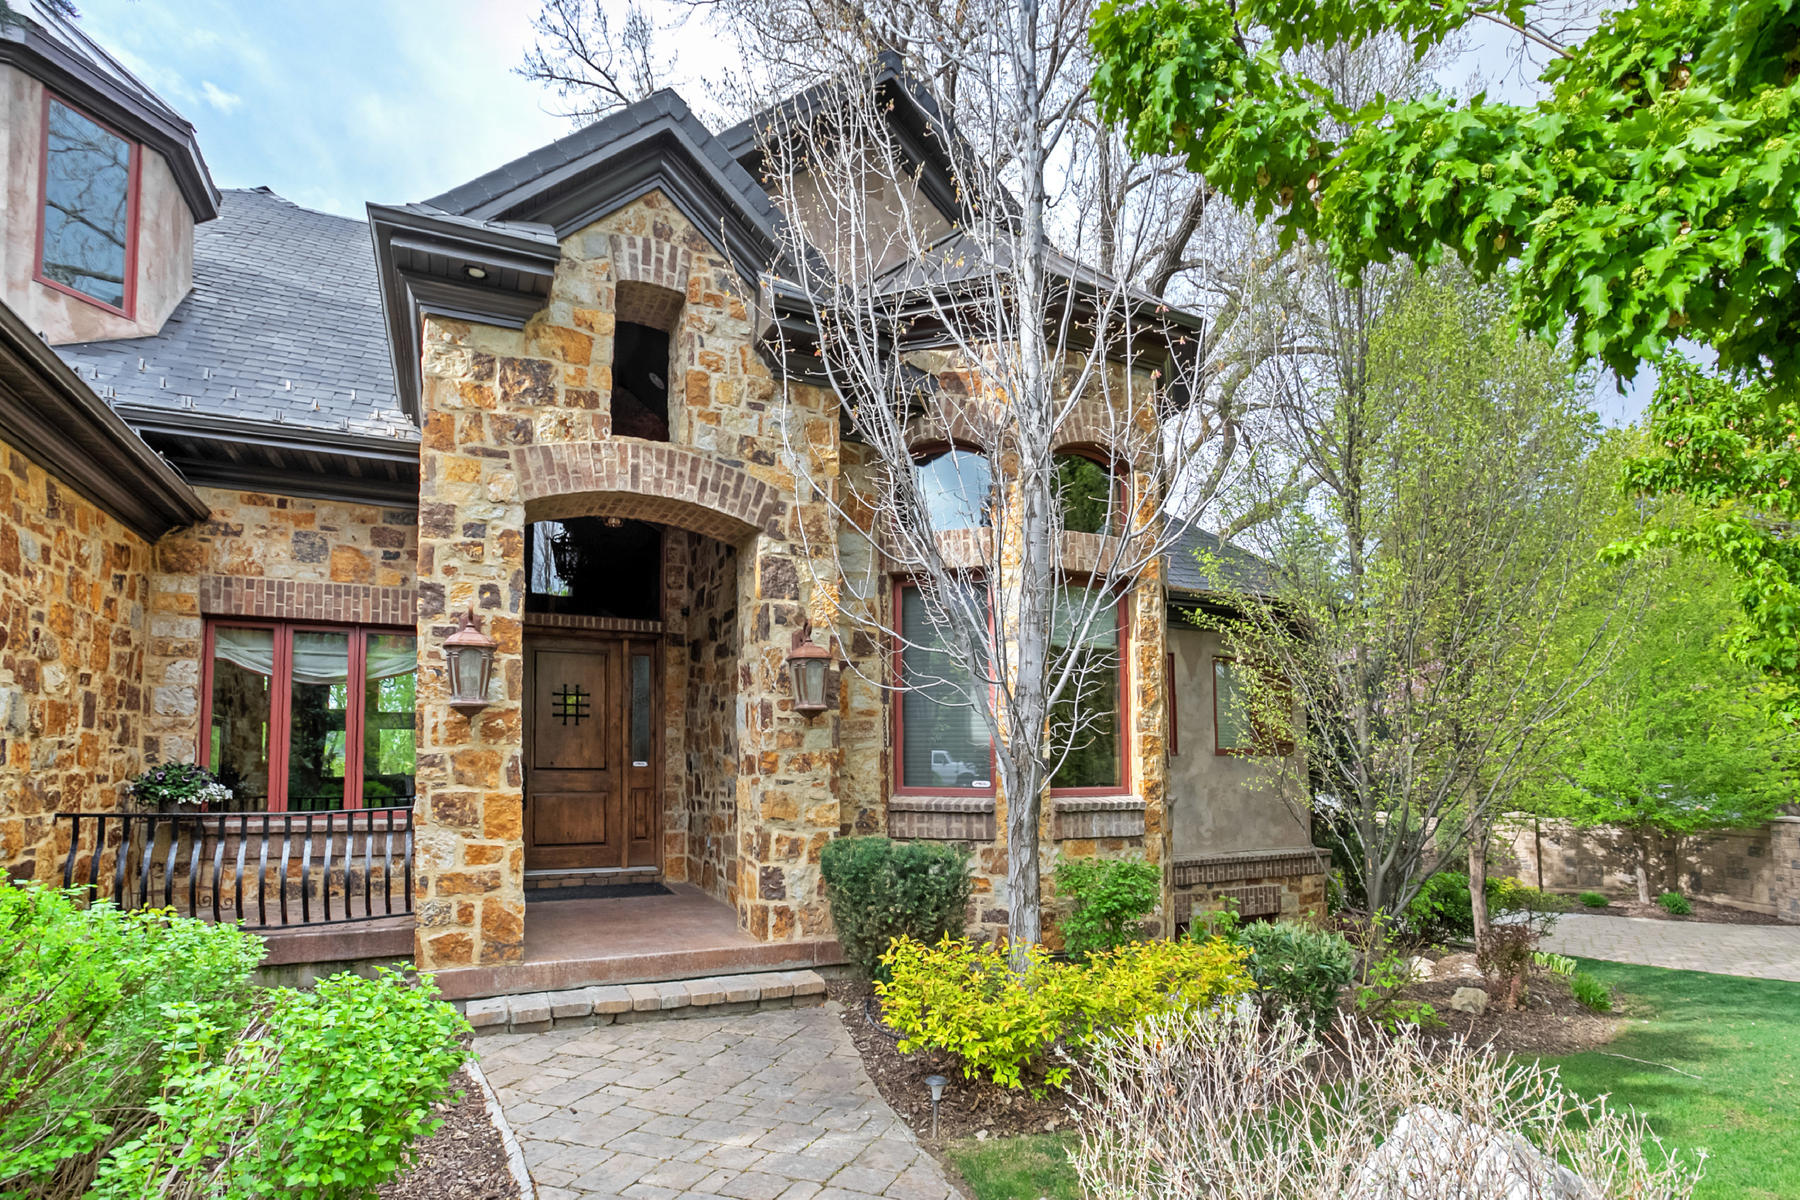 一戸建て のために 売買 アット Incredible, Secluded Two-Story in Millcreek 2472 Evergreen Ave Salt Lake City, ユタ, 84109 アメリカ合衆国